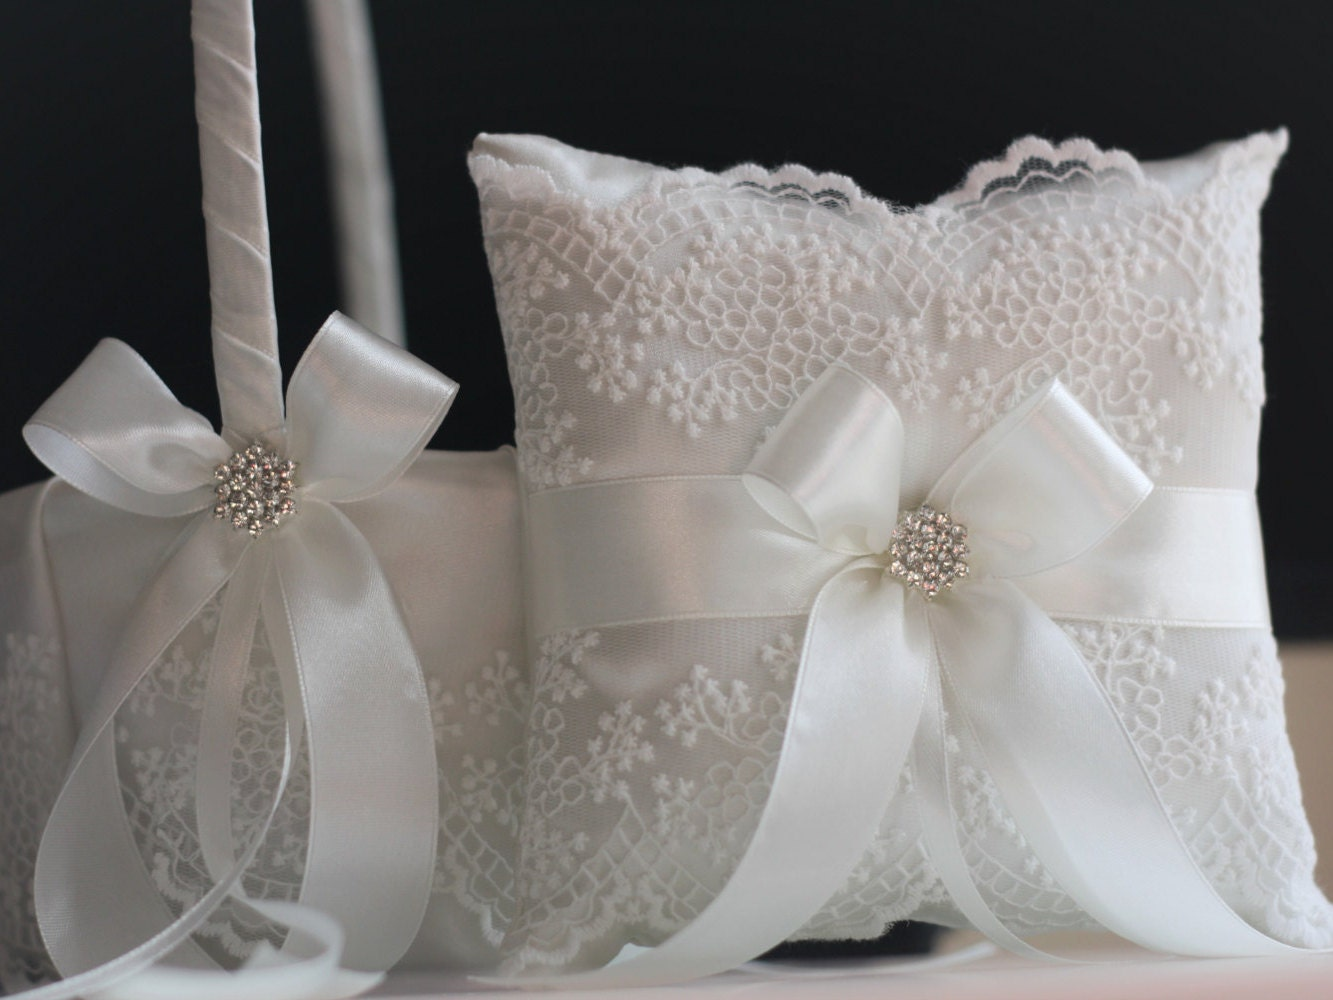 How To Make A Lace Flower Girl Basket : Lace ring bearer pillow basket set flower girl